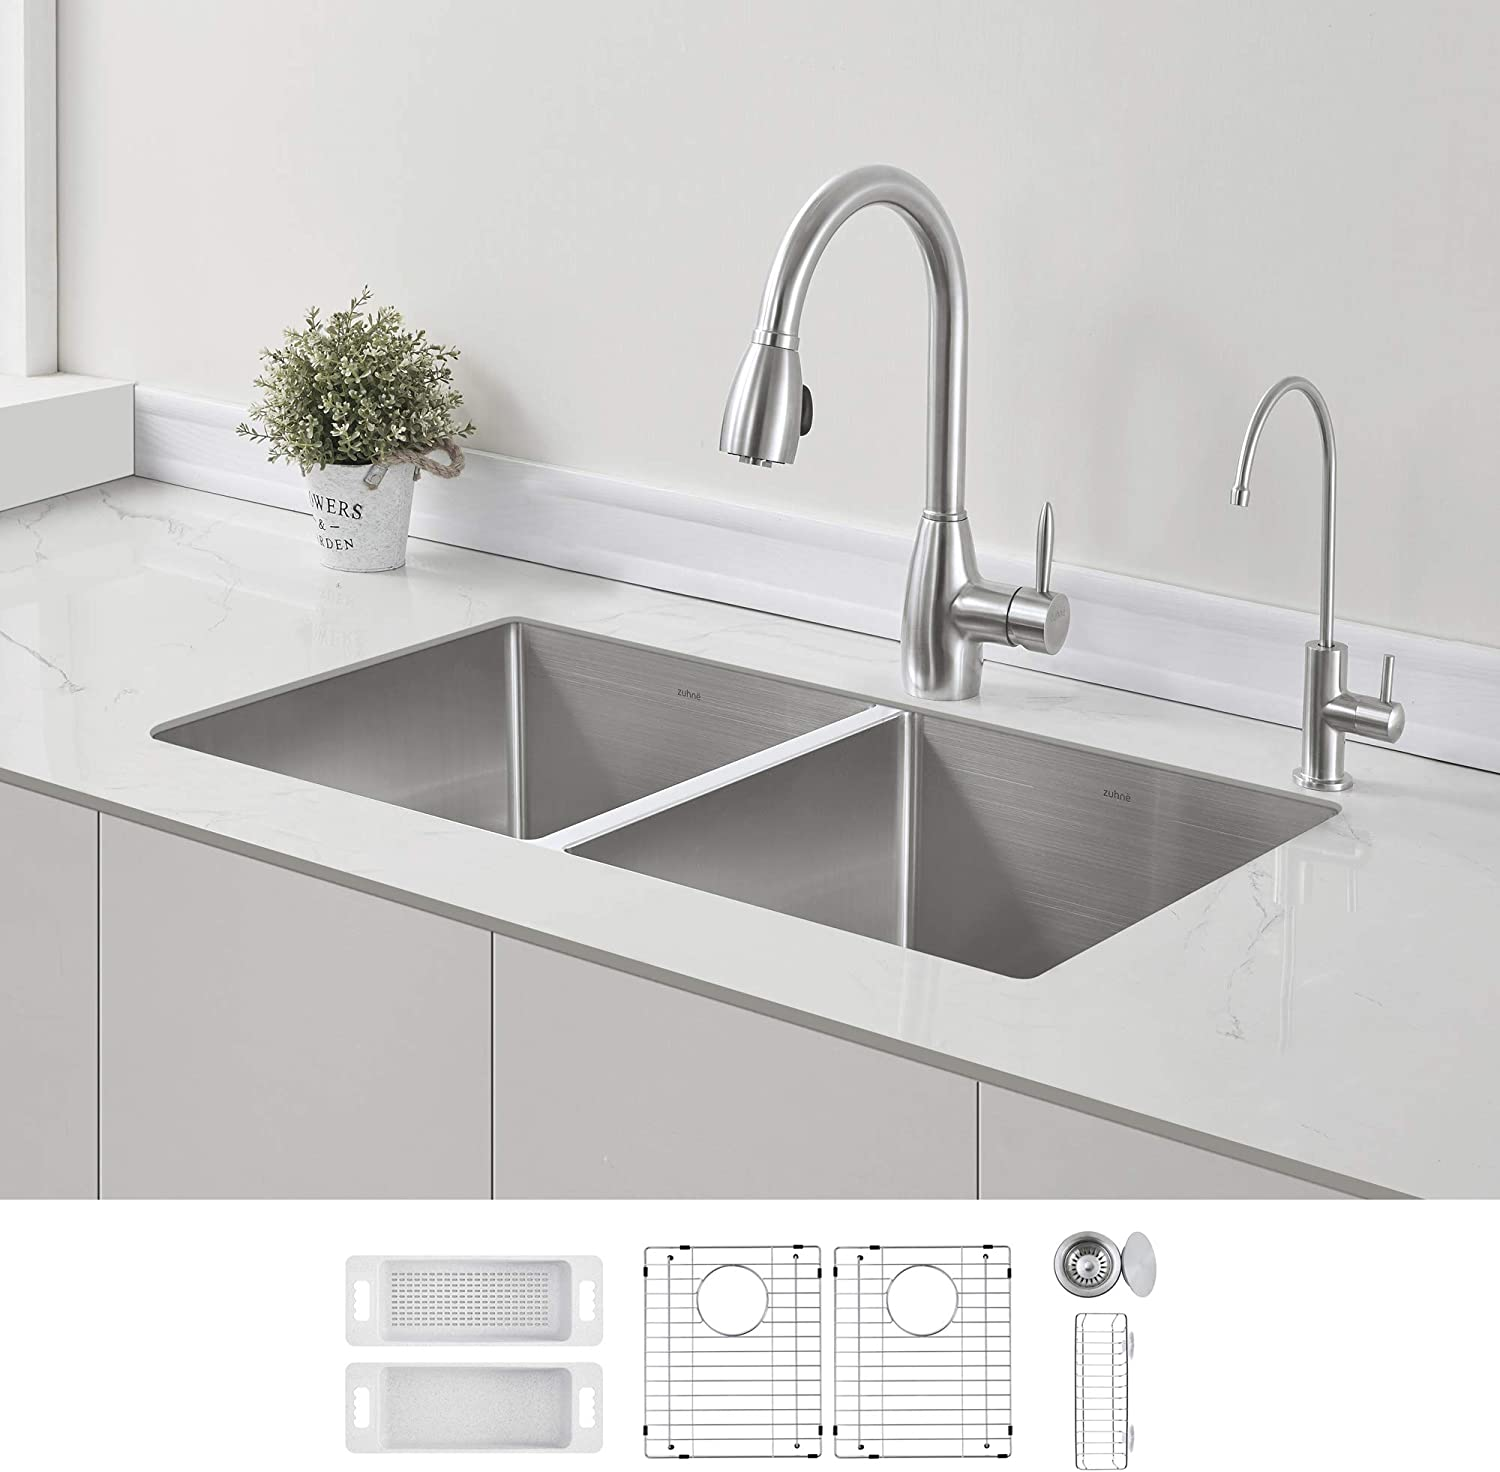 Zuhne 32 Inch Double Bowl Undermount Stainless Steel Deep Kitchen Sink 16 Gauge 50 50 Equal Amazon Com